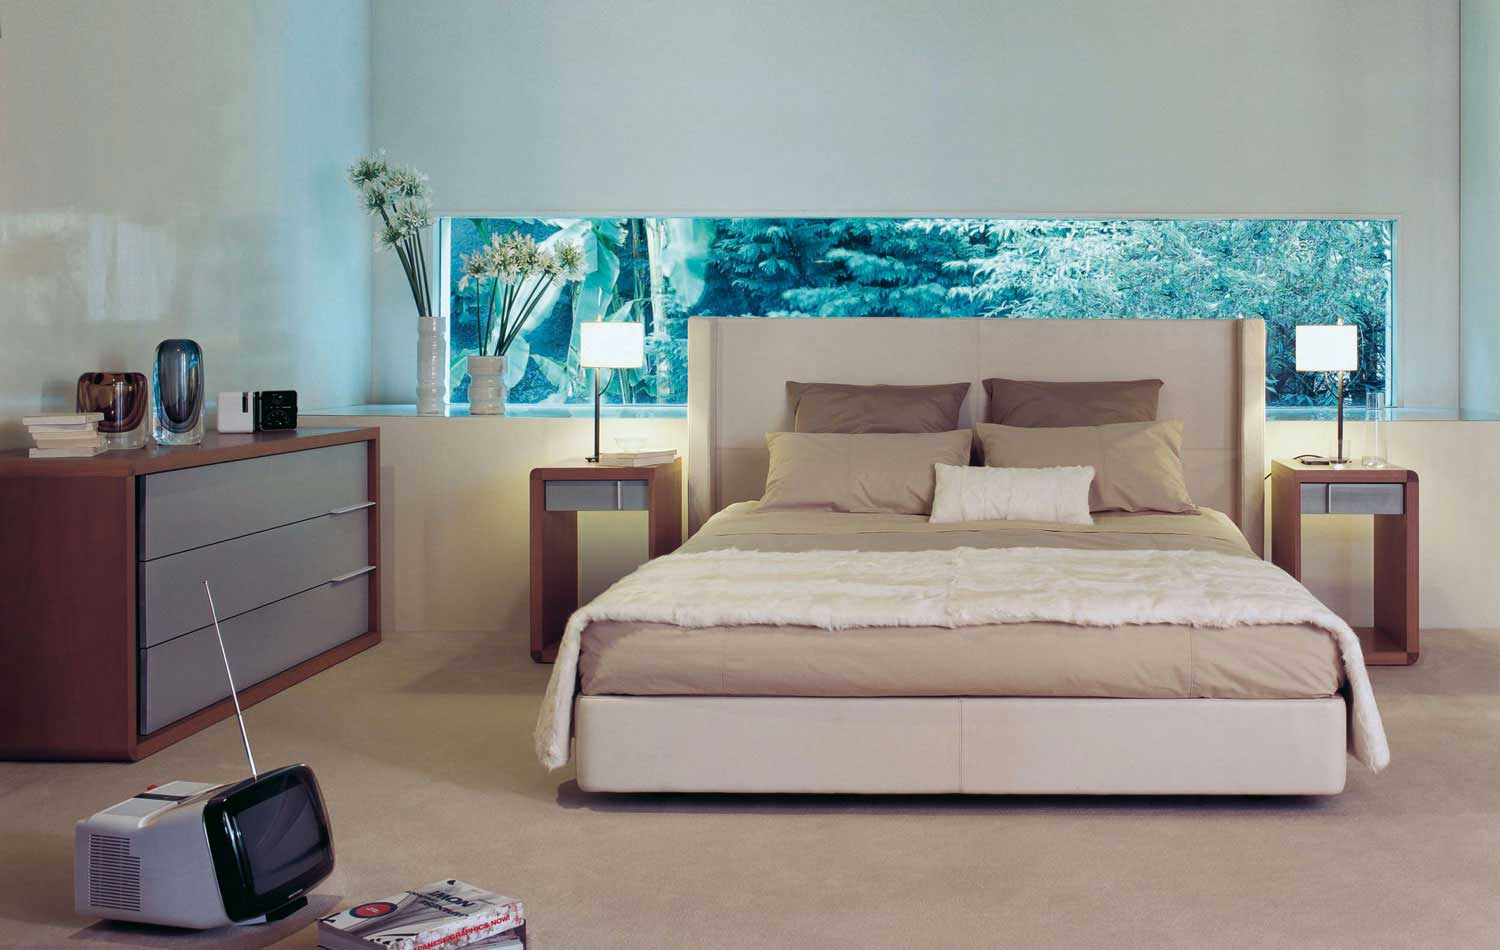 Bedrooms from roche bobois for Pics of bedroom designs